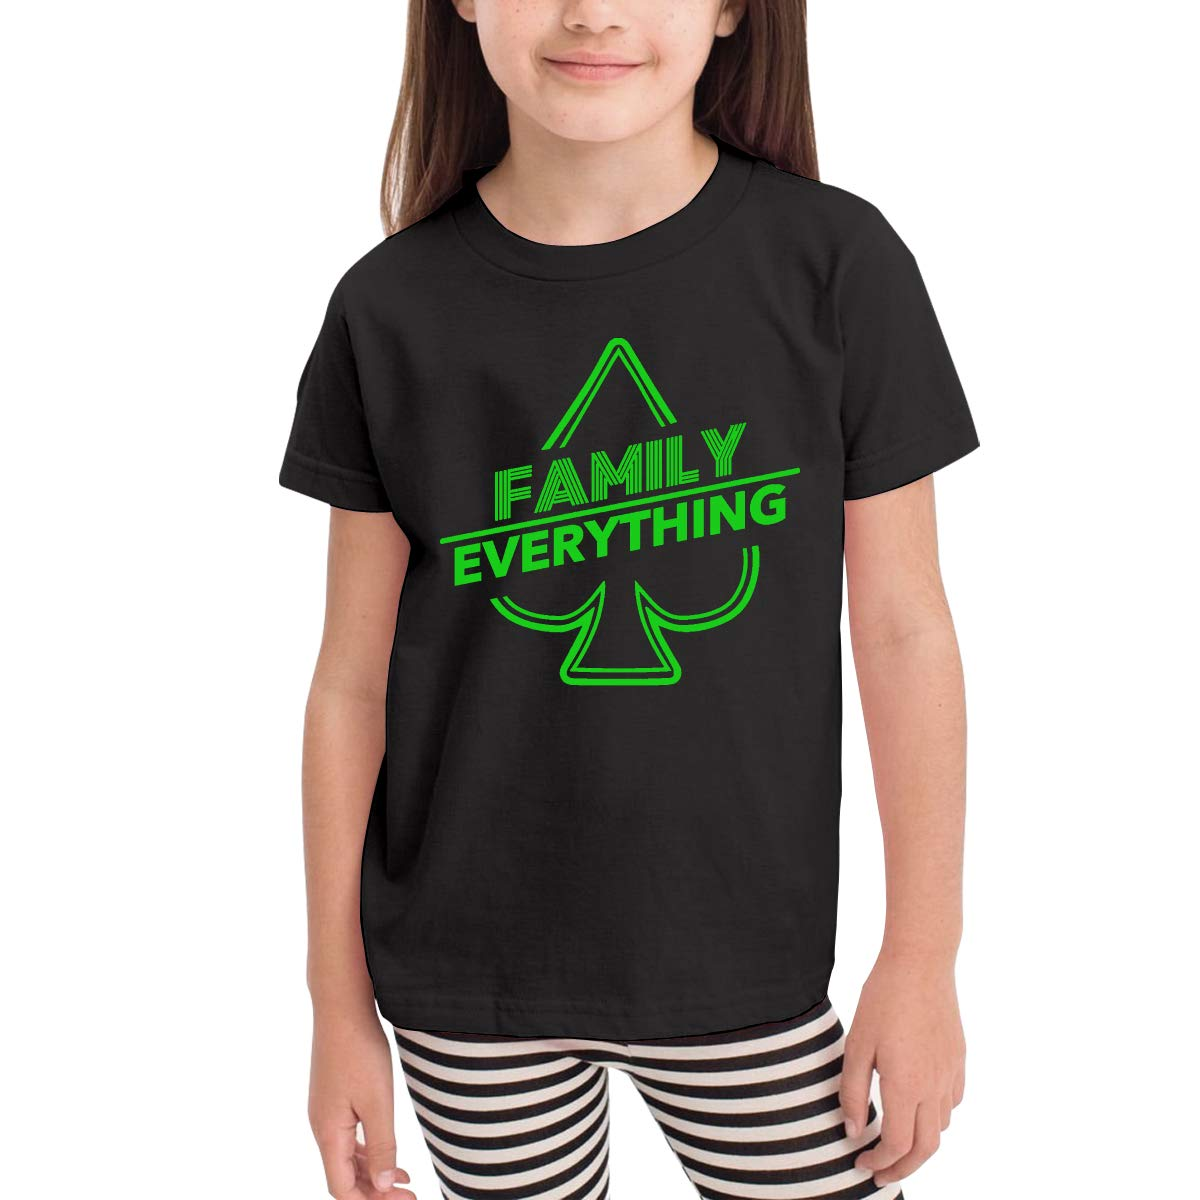 2-6 Year Old Childrens Short Sleeve Unique Sleek Minimalist New Short-Sleeved T-Shirt ACE Family Logo Black